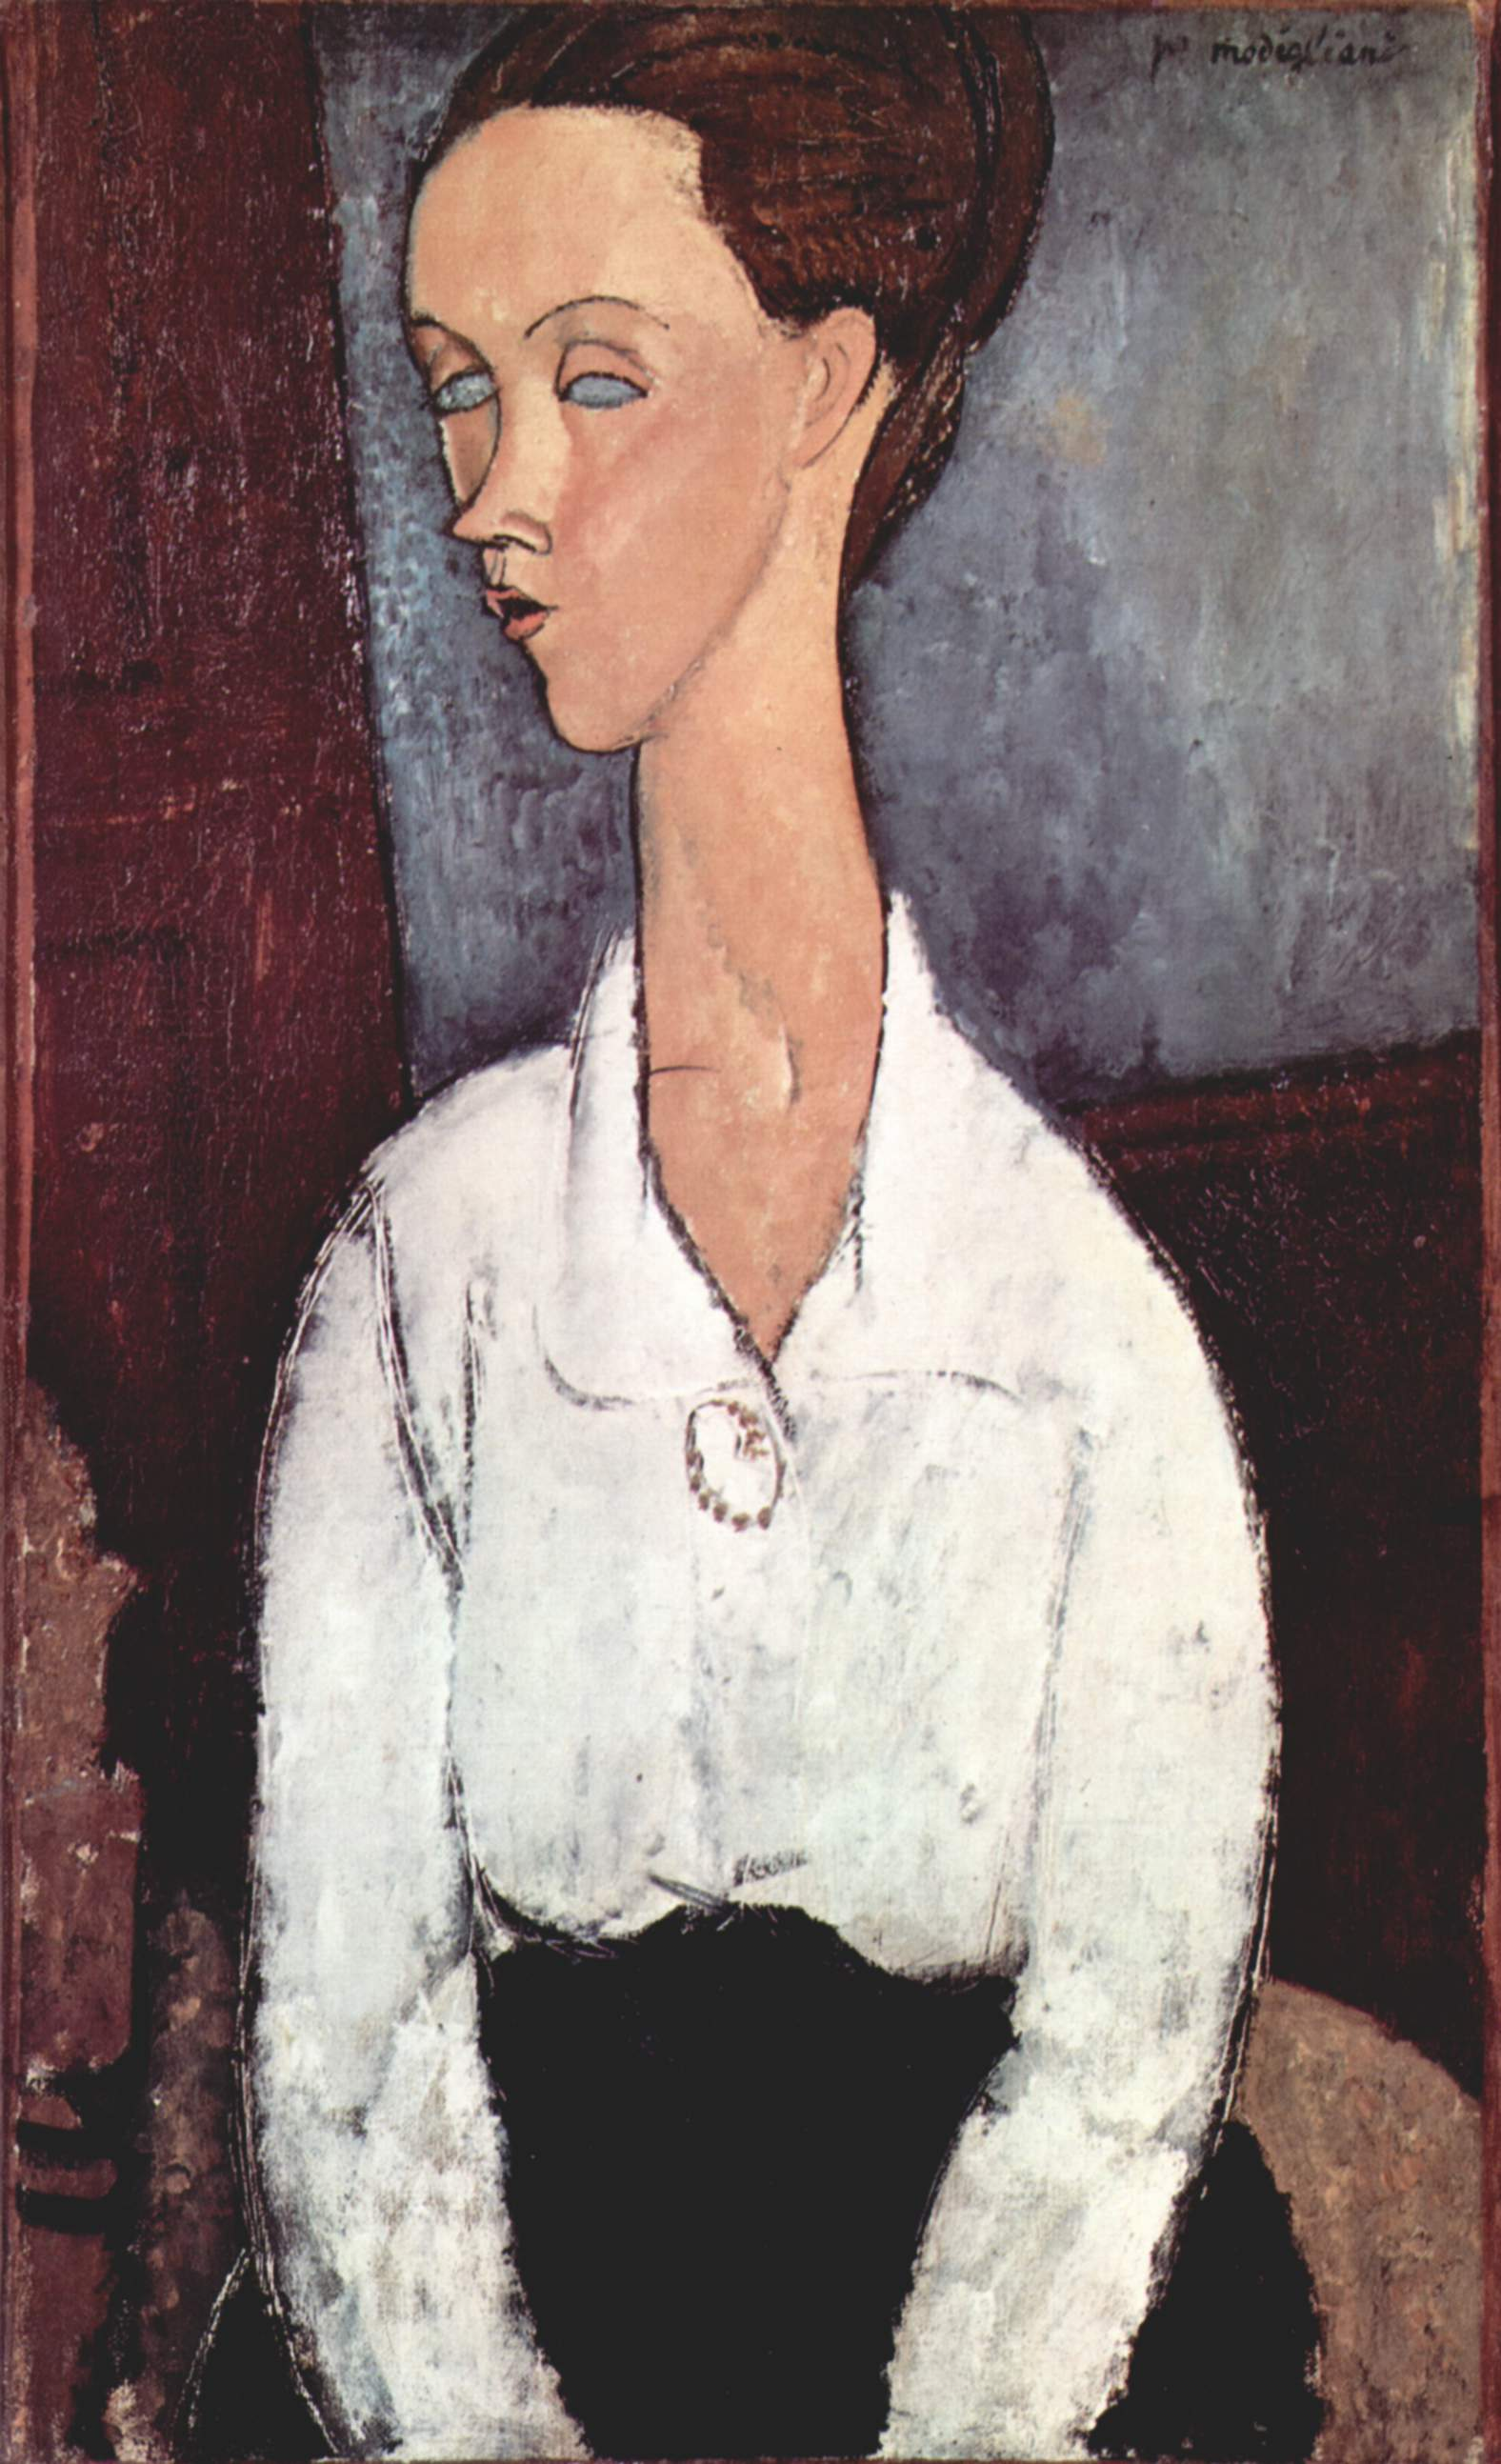 a biography of amedeo modigliani Amedeo clemente modigliani (italian pronunciation: [ameˈdɛo modiʎˈʎani] july 12, 1884 – january 24, 1920) was an italian painter and sculptor who.